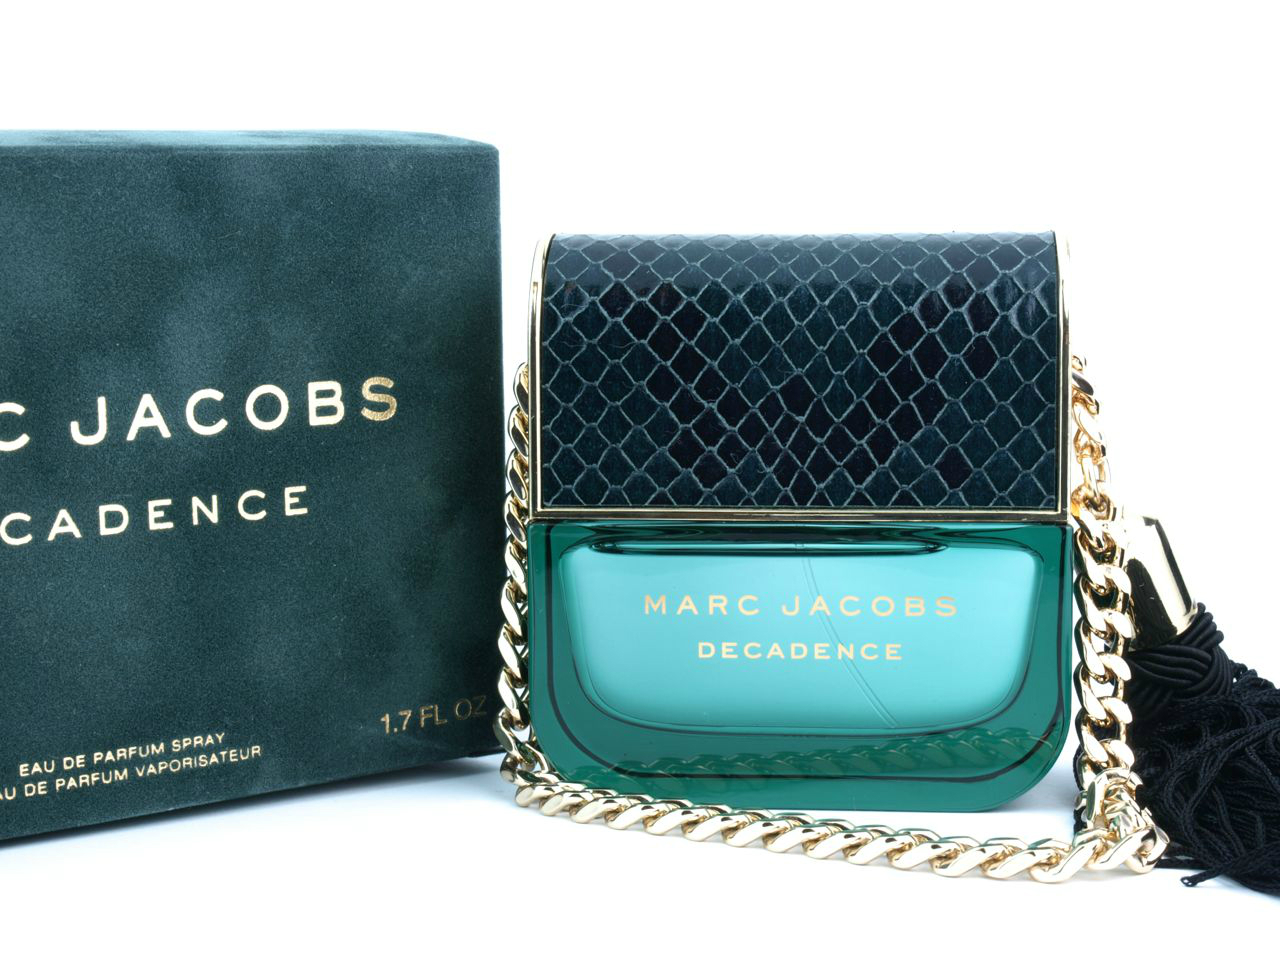 Marc Jacobs Decadence Eau de Parfum: Review